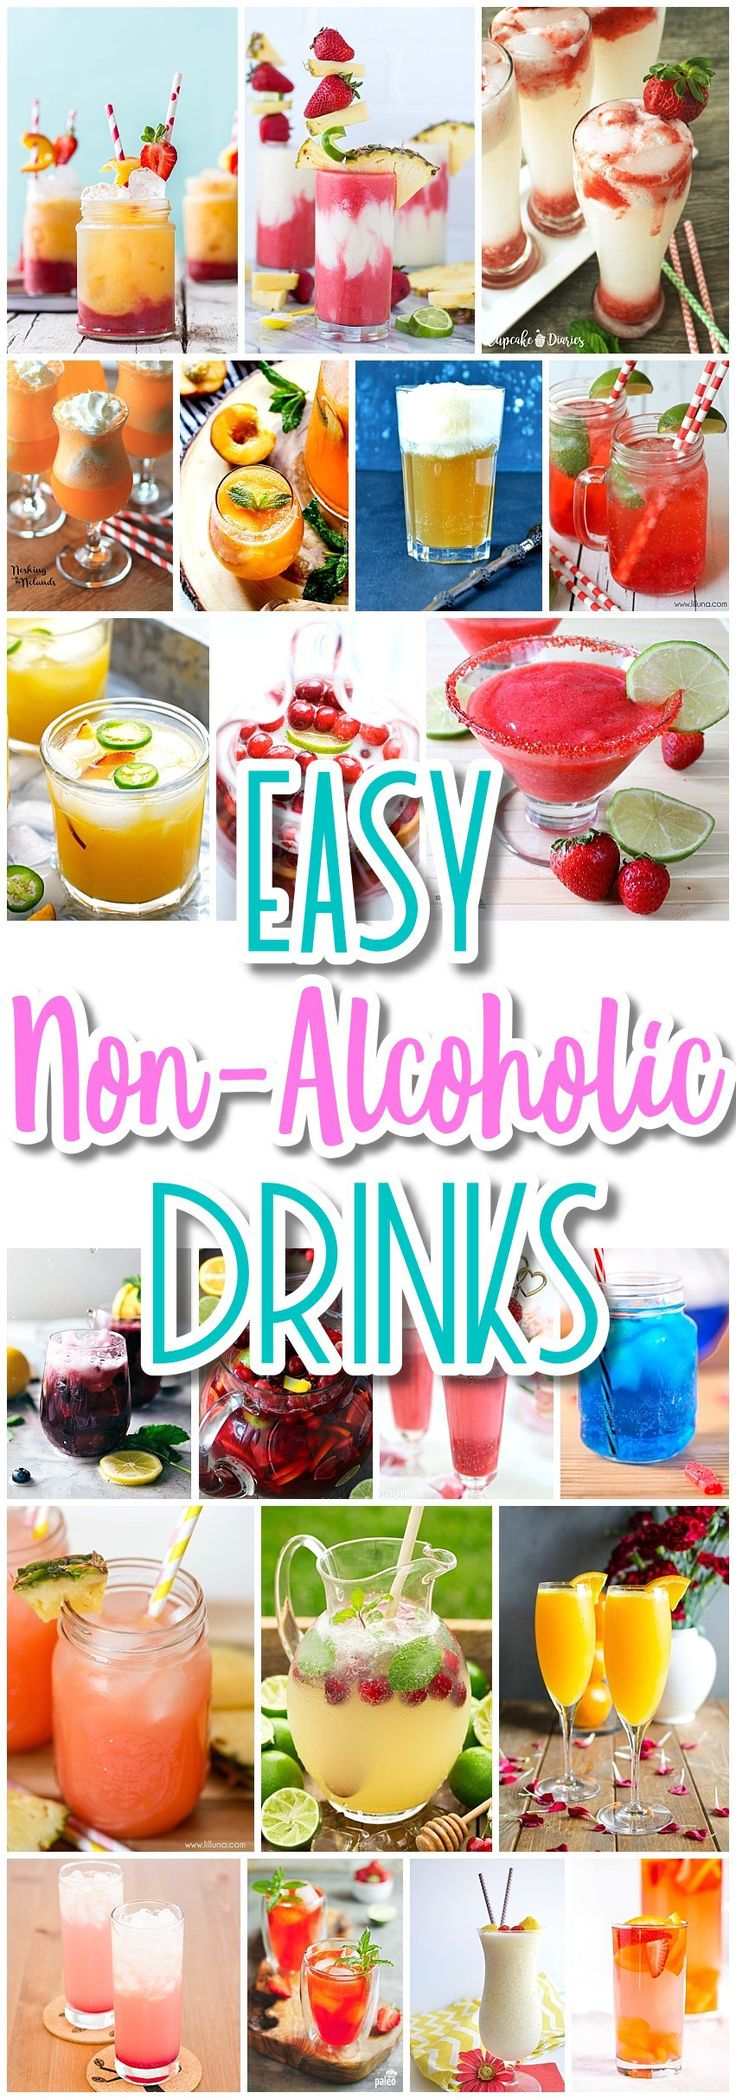 25+ best ideas about Easy alcoholic drinks on Pinterest | Easy ...